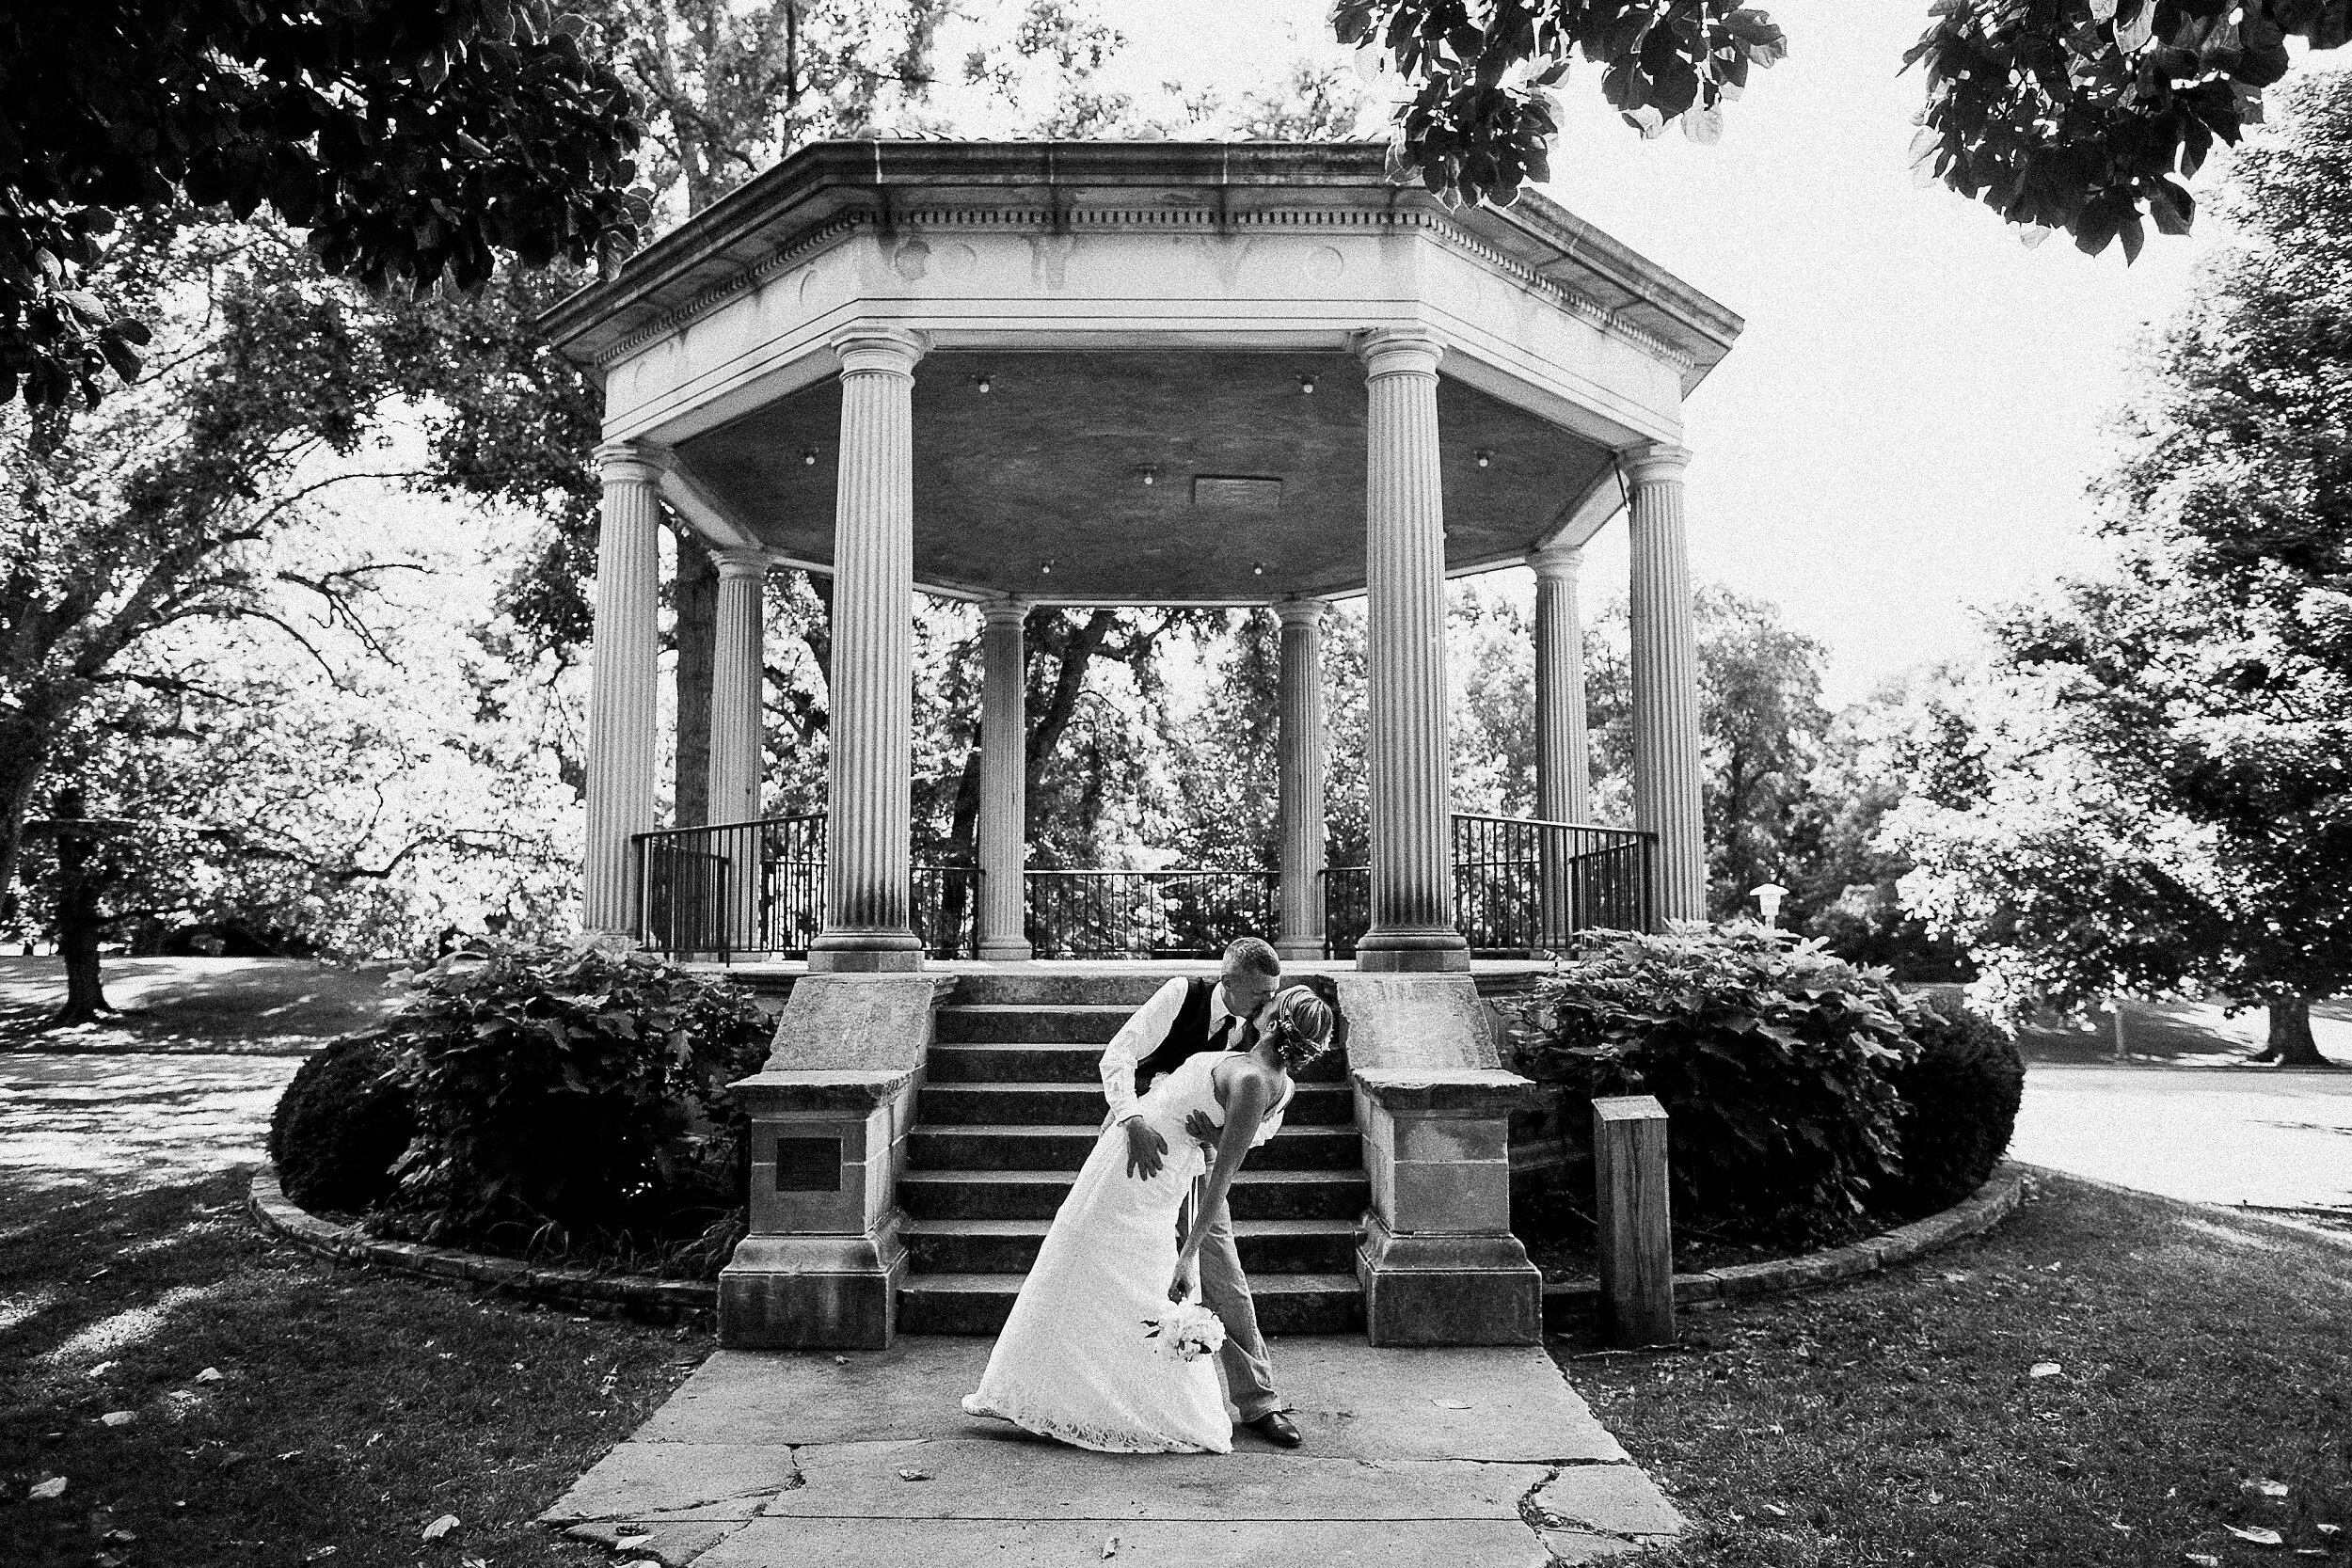 washington-park-gazebo-springfield-il-wedding-photography_0073.jpg